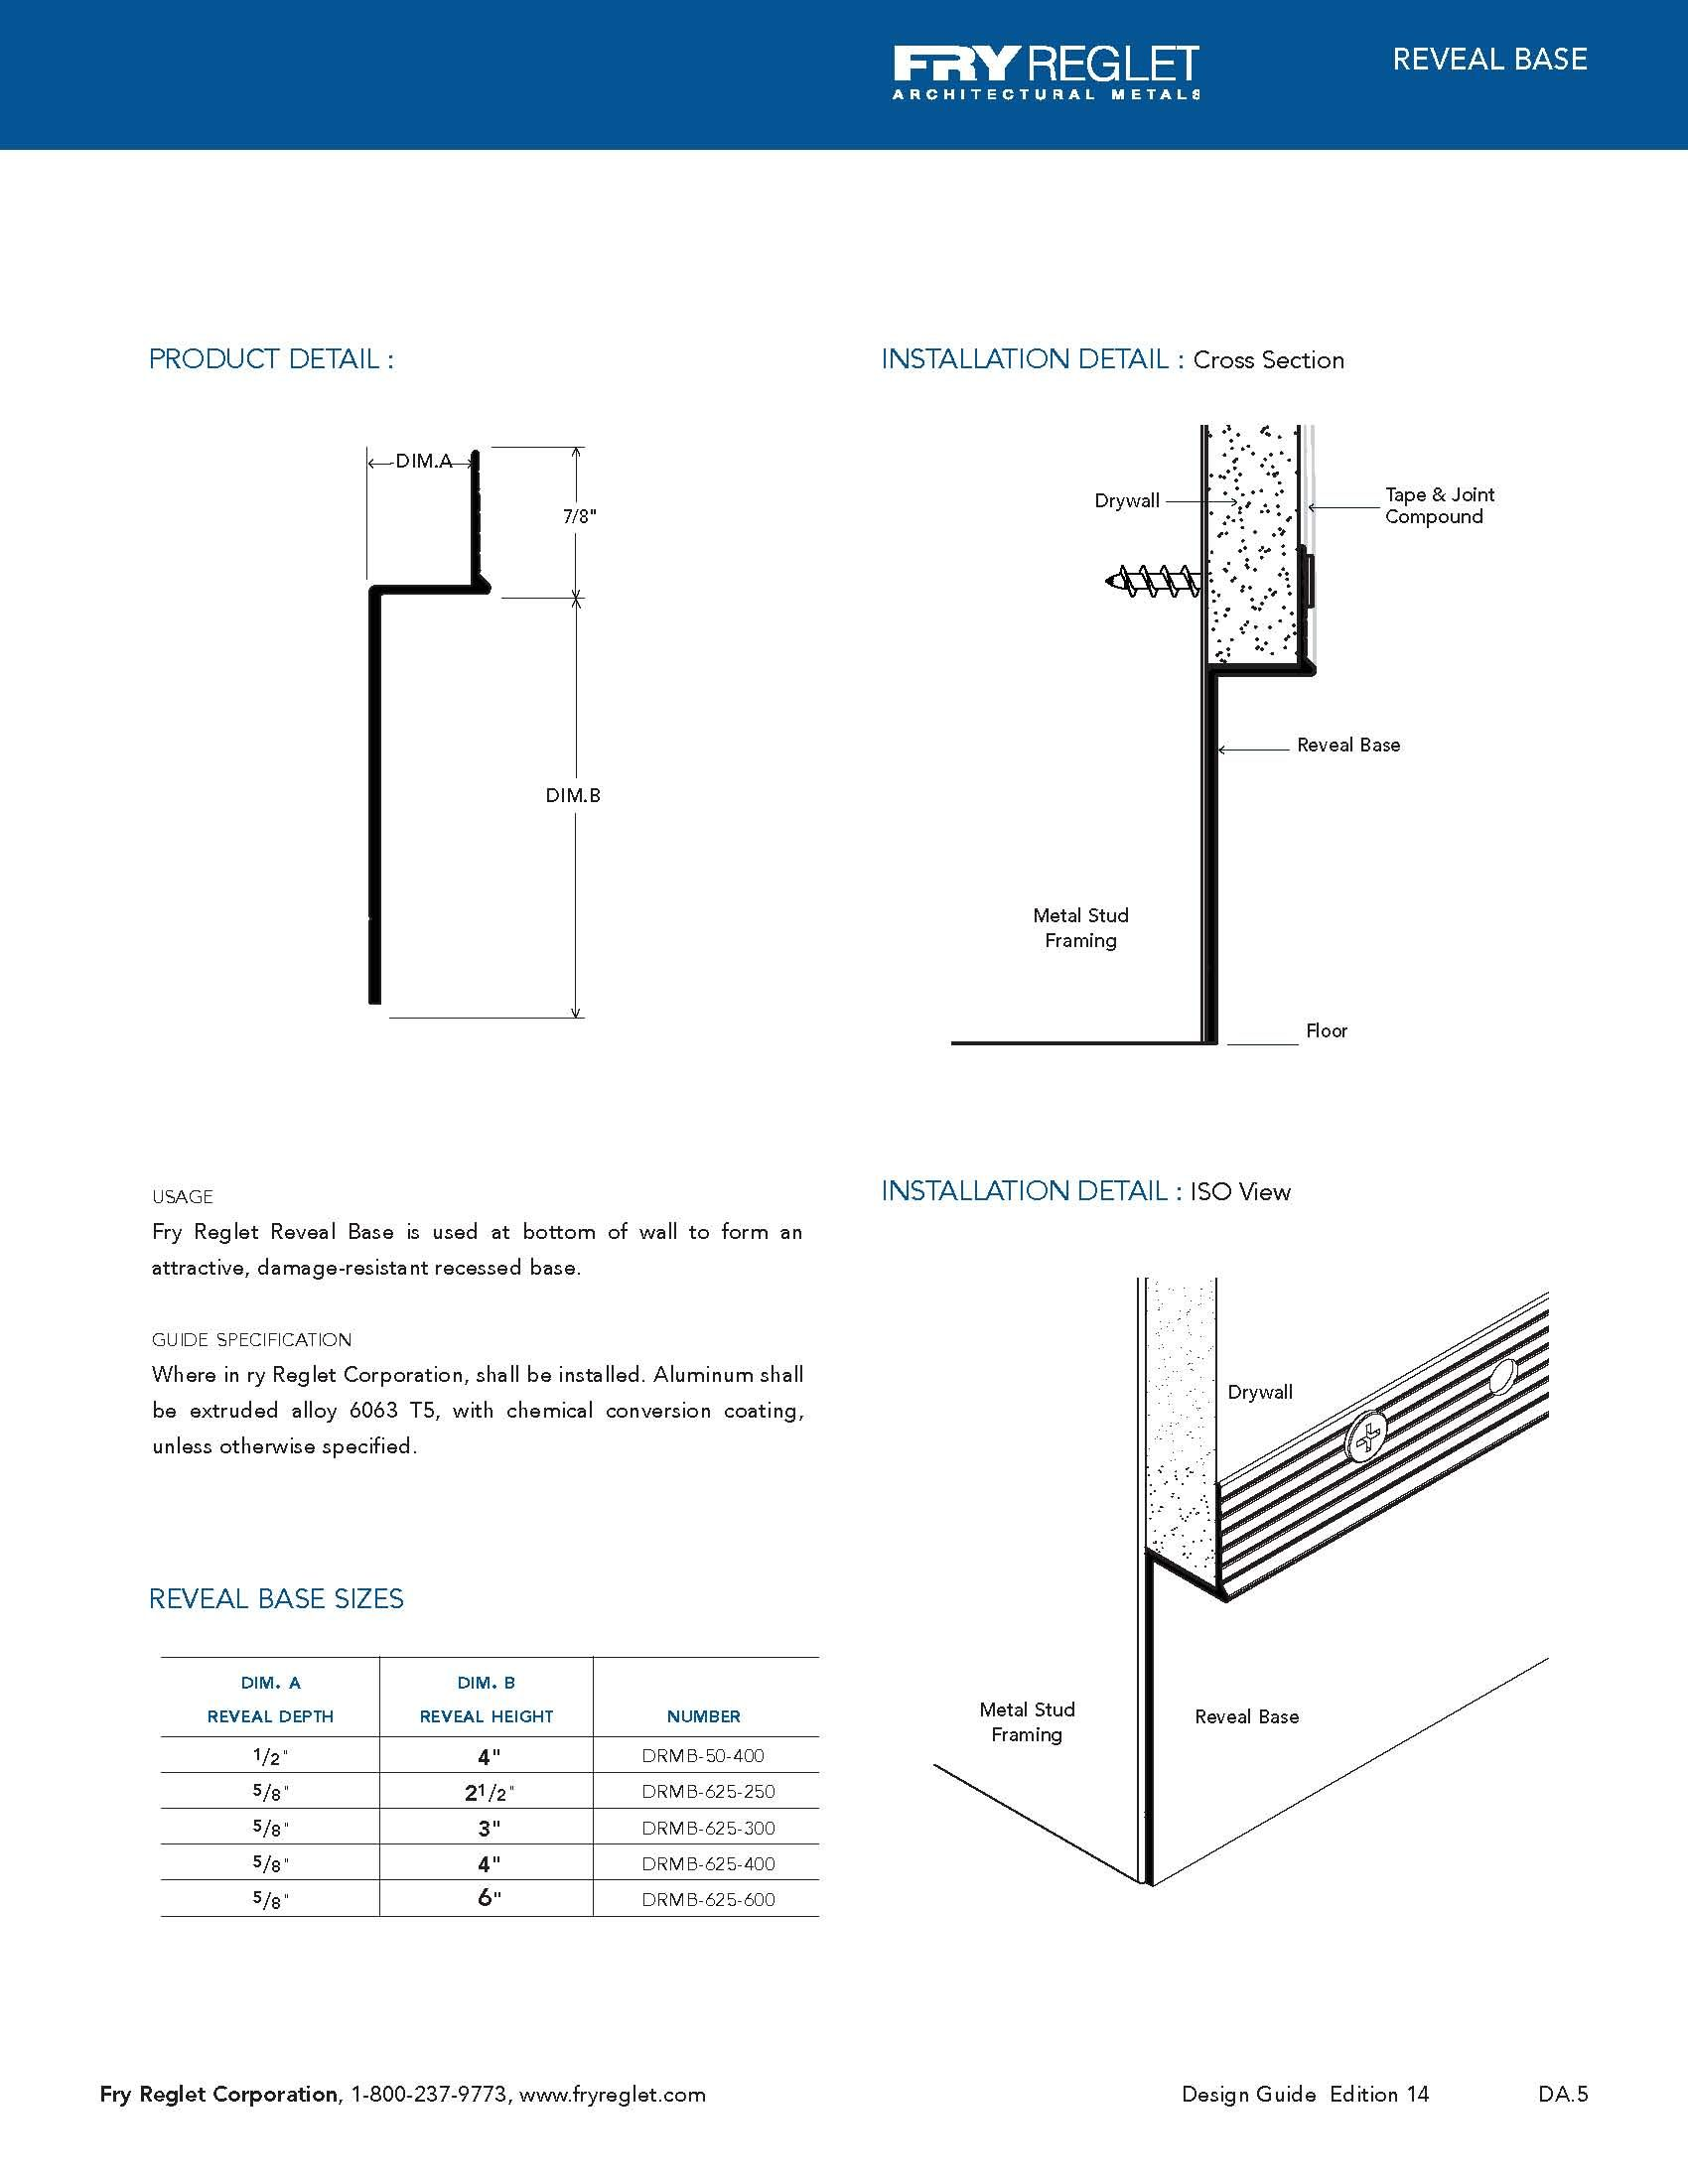 Adam Breen Details For The Baseboard And Reveal Drywall Reglets Brochure Which Are Architecture Details Baseboards Architecture